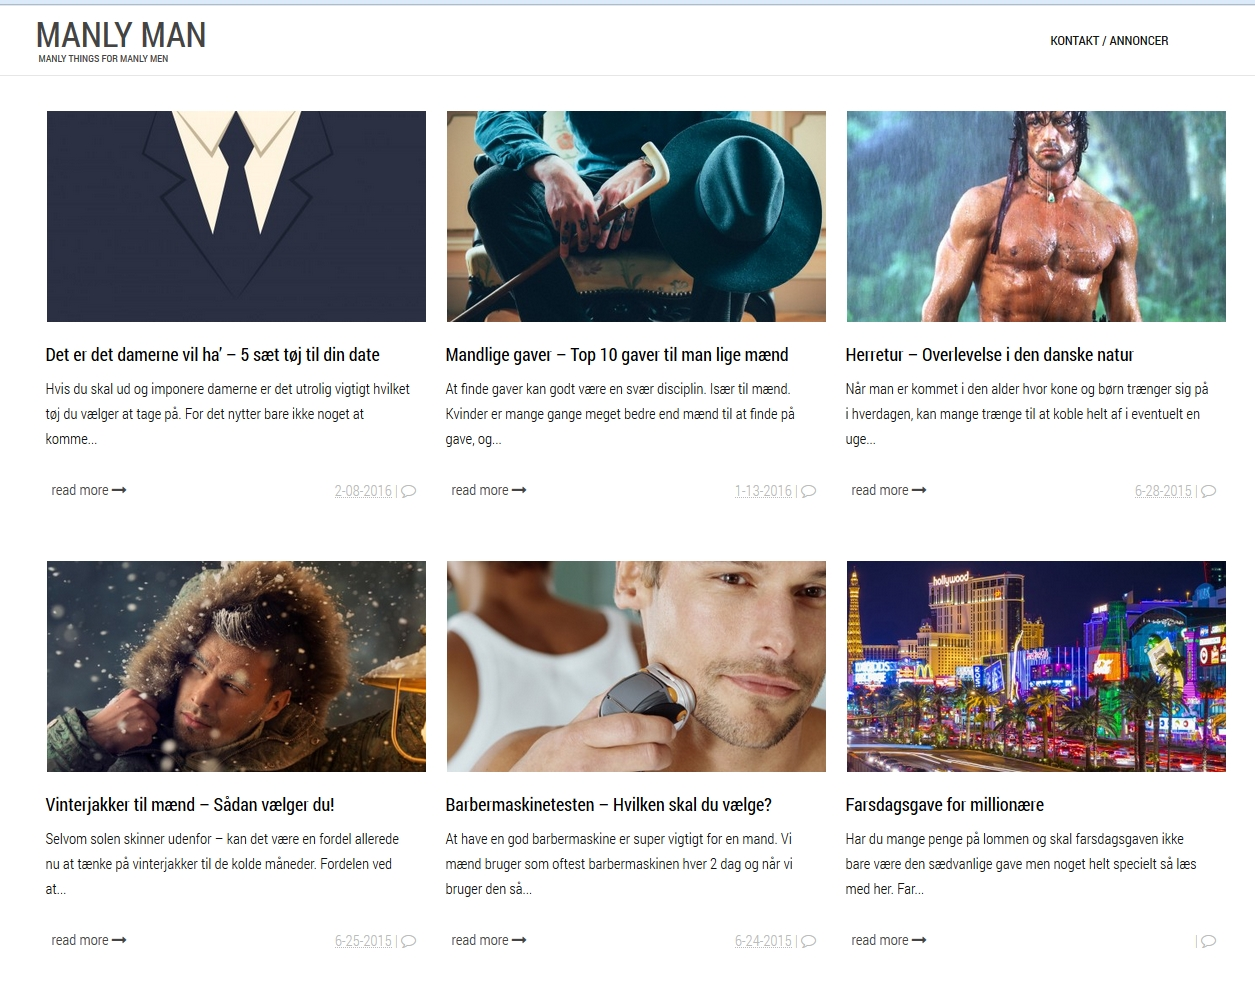 Manly Man | Manly Things for Manly Men